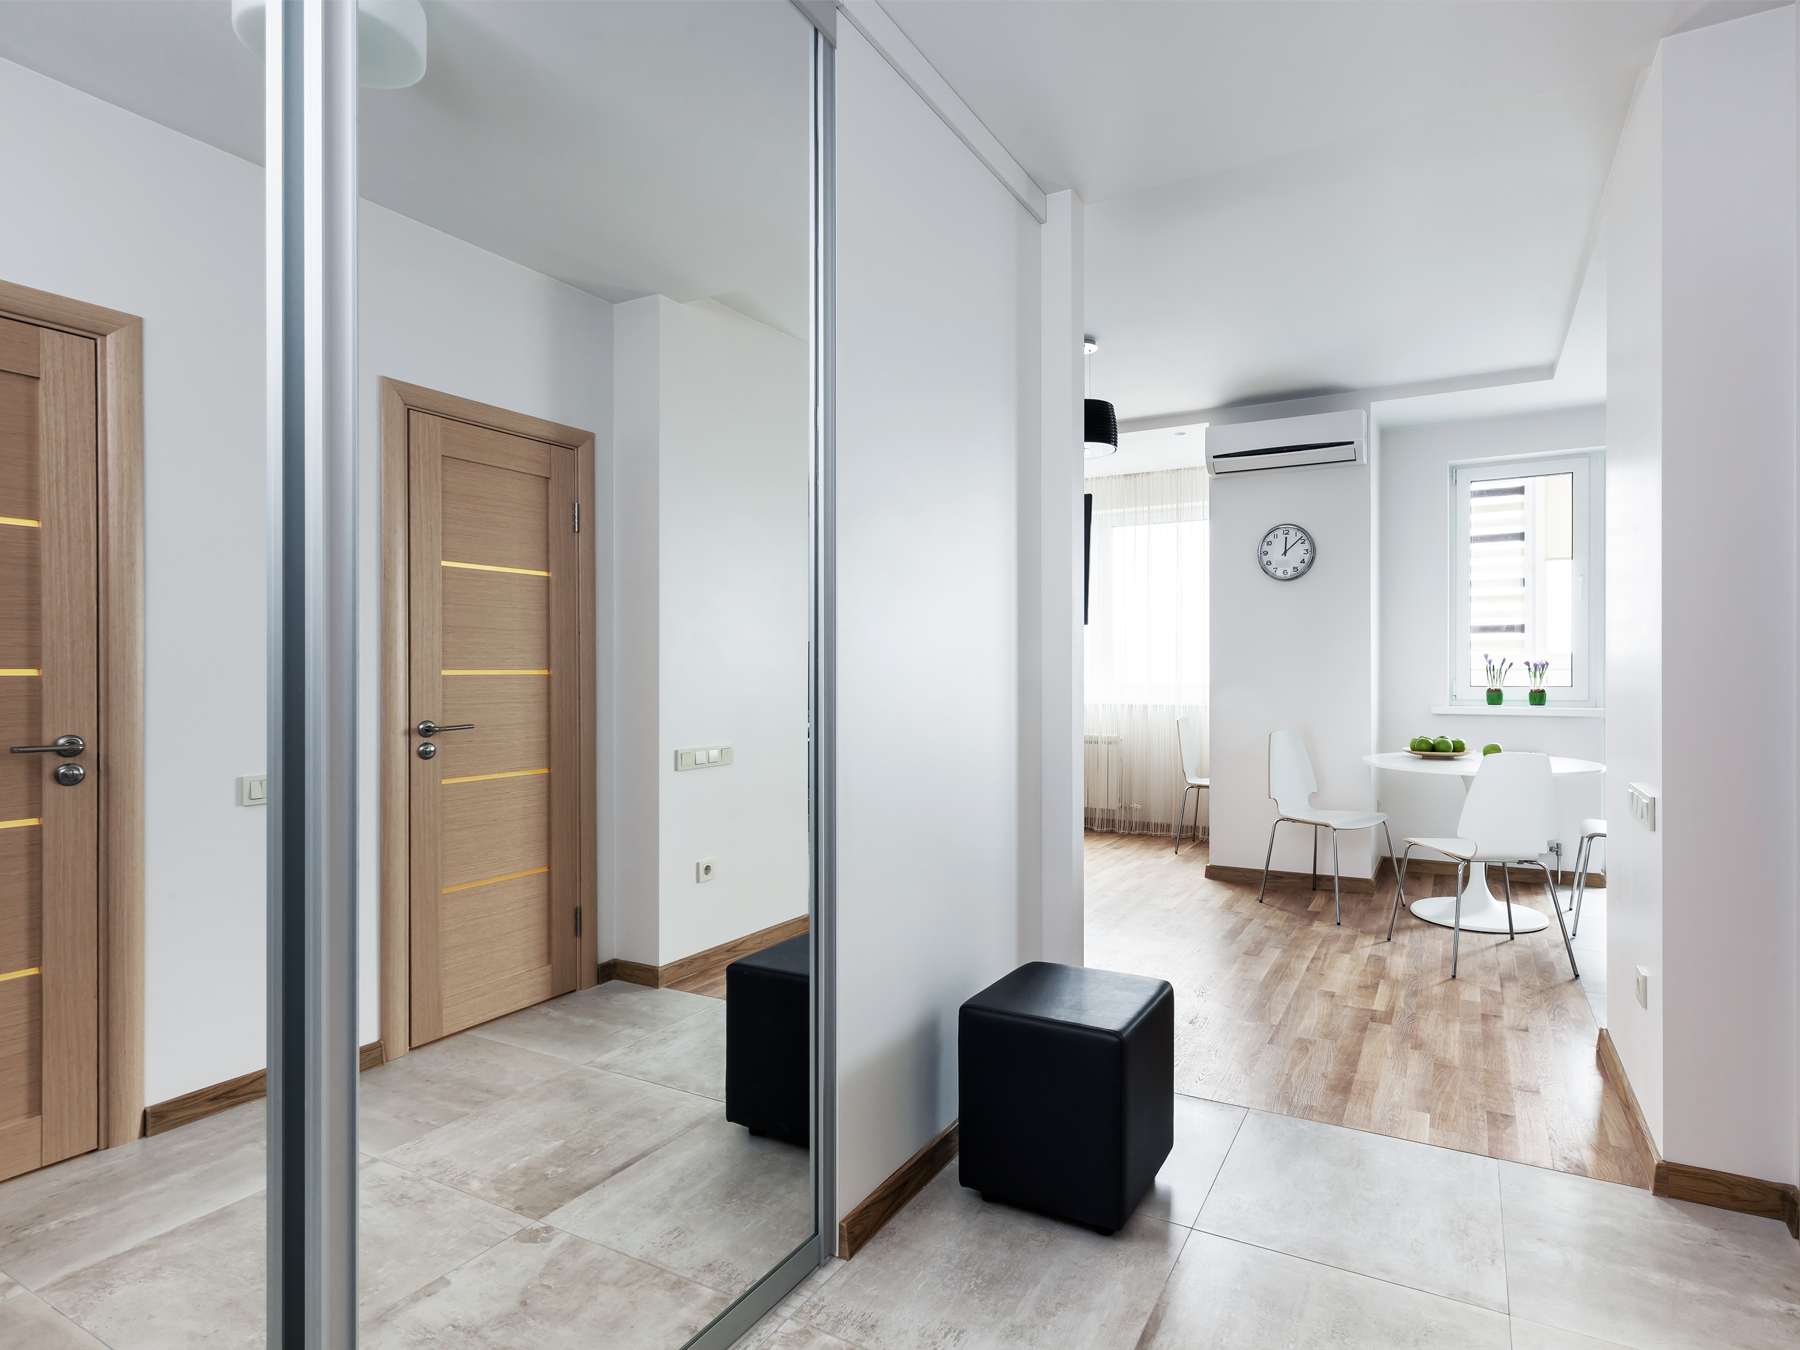 For Two Wardrobe Sliding Doors Helaform